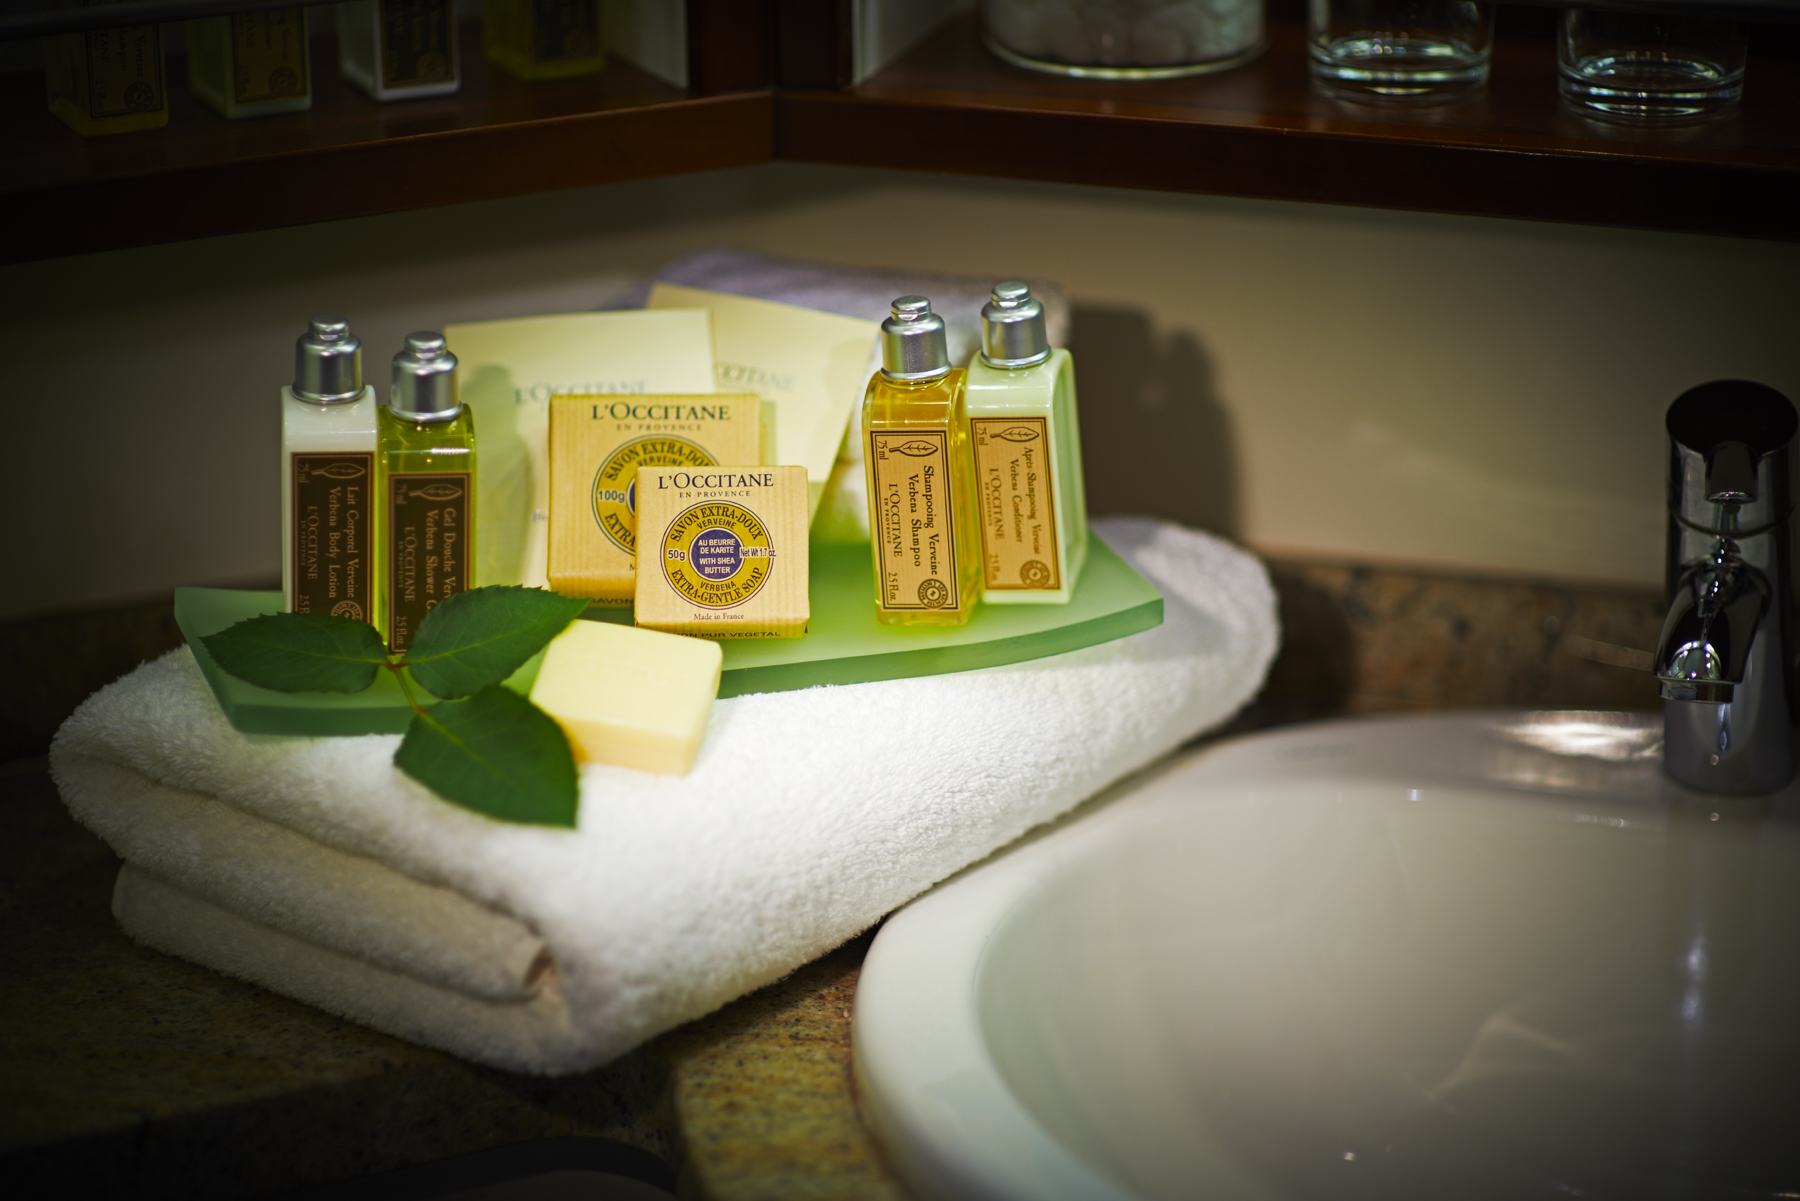 L'Occitane bath amenties